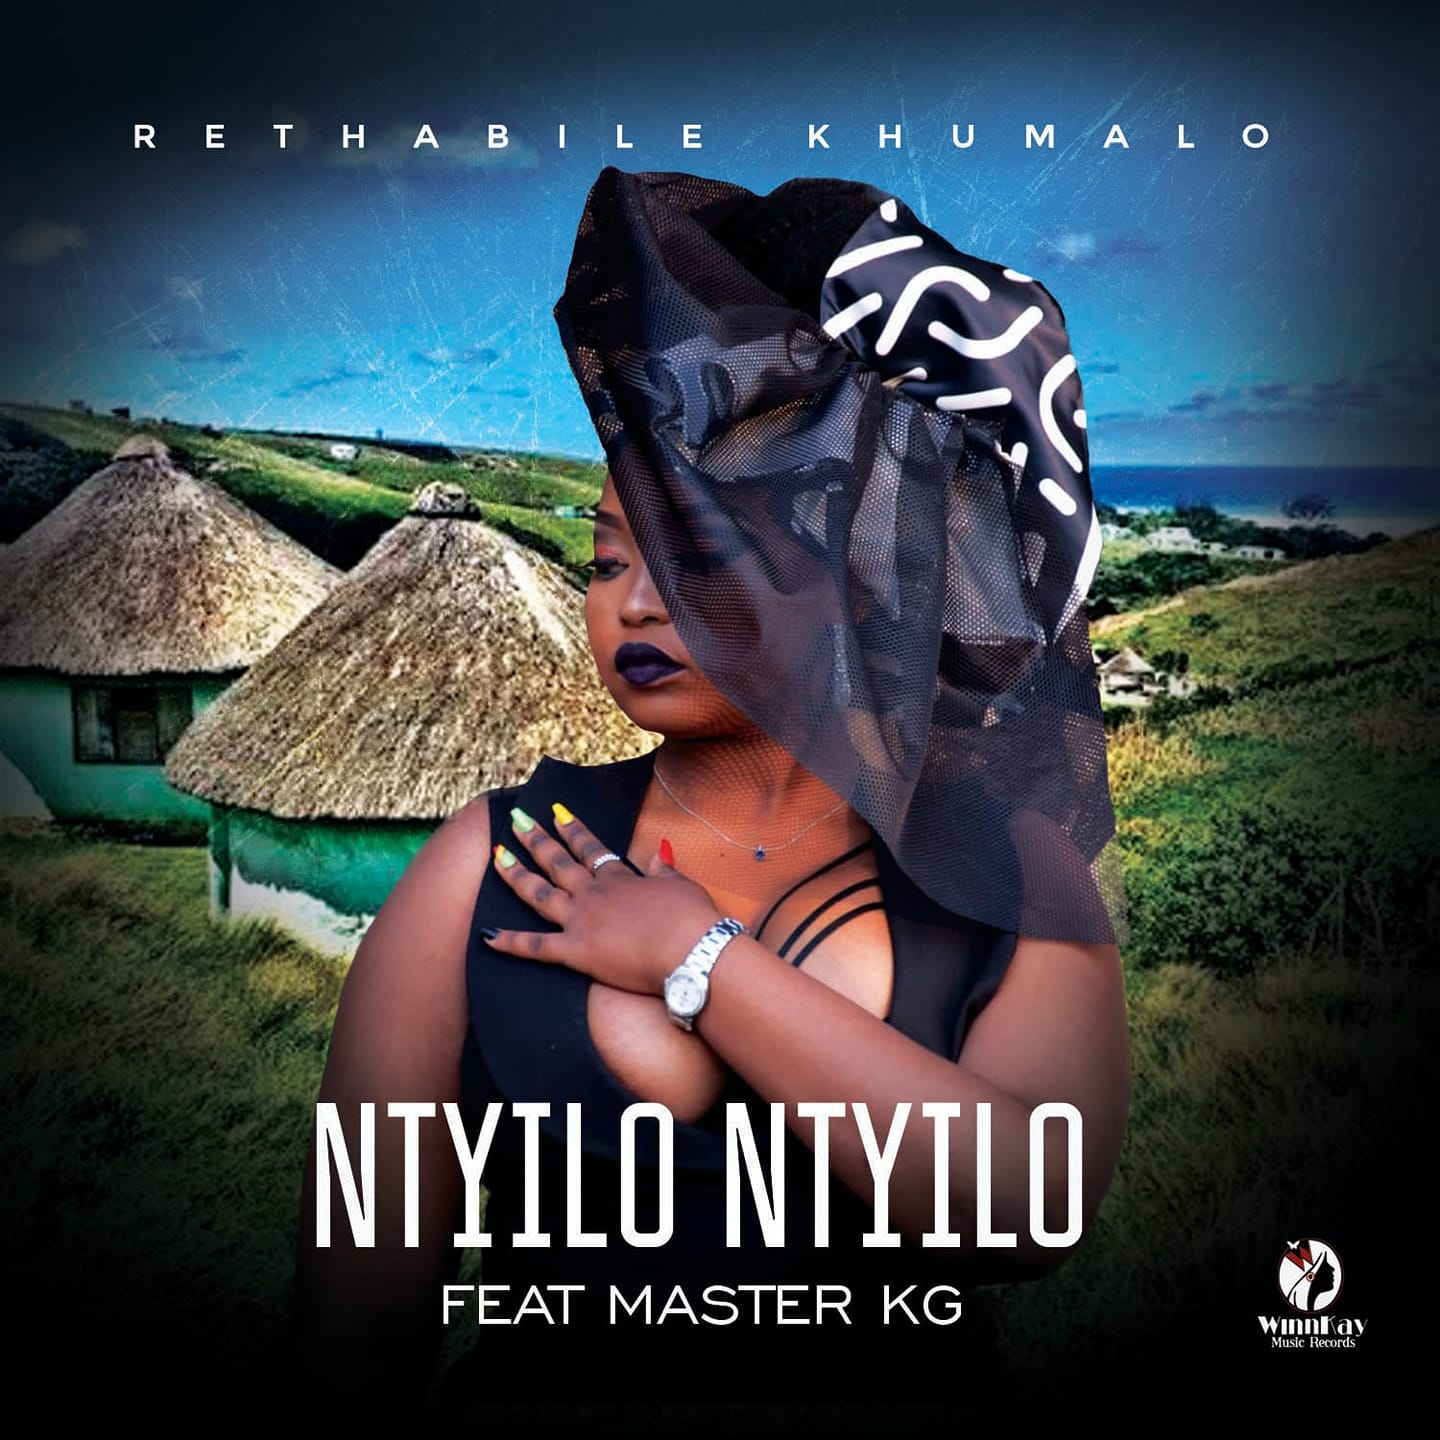 Rethabile Khumalo feat. Master Kg – Ntyilo Ntyilo (Download mp3 2020)